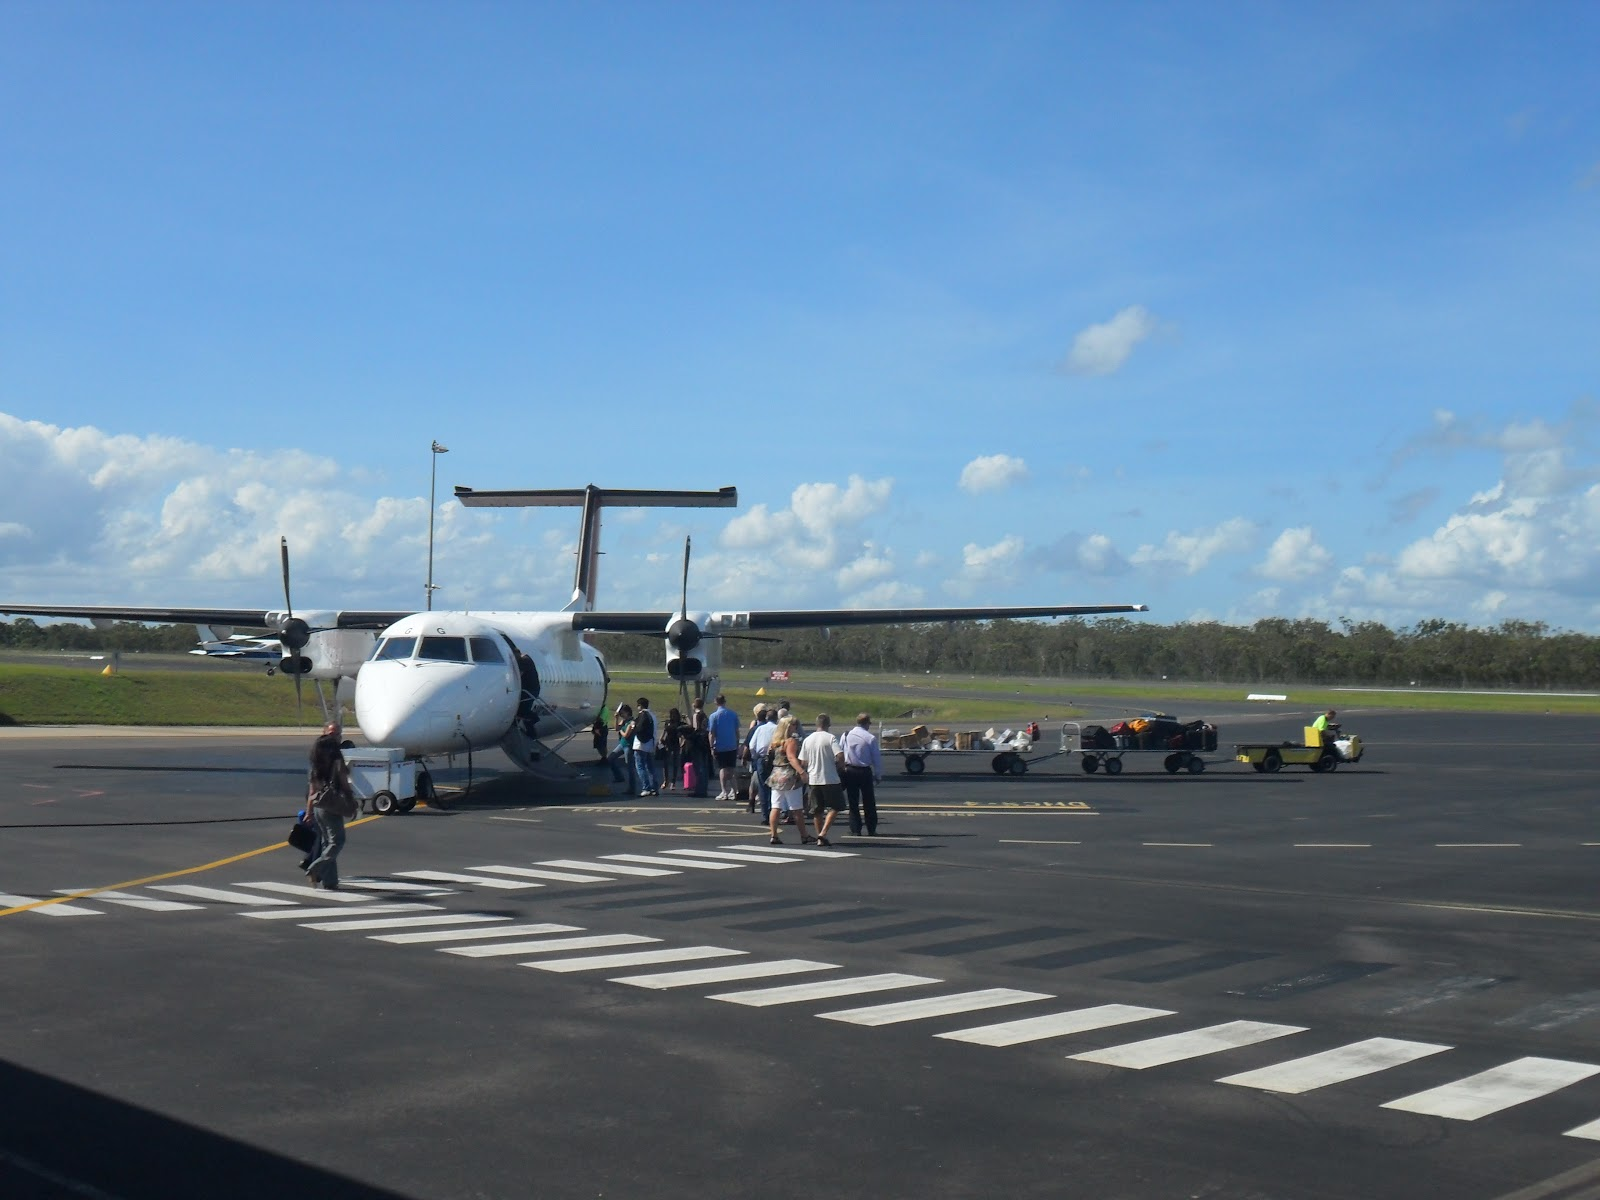 sydney to hervey bay flights - photo#22